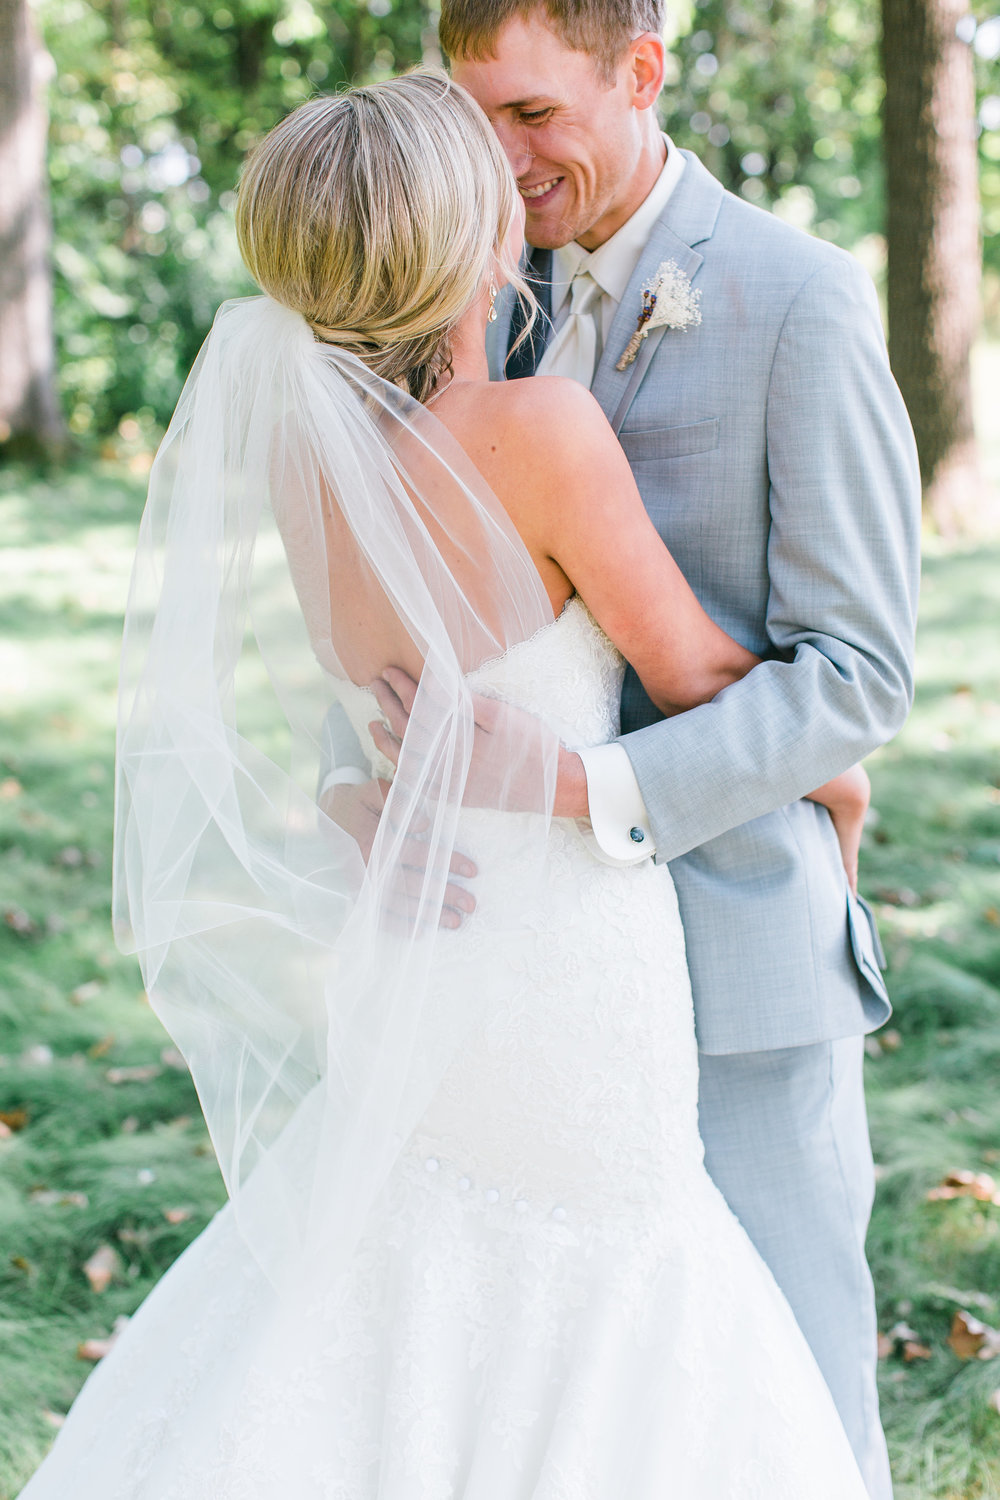 Bride and groom embracing in lush greenery at Minnesota wedding